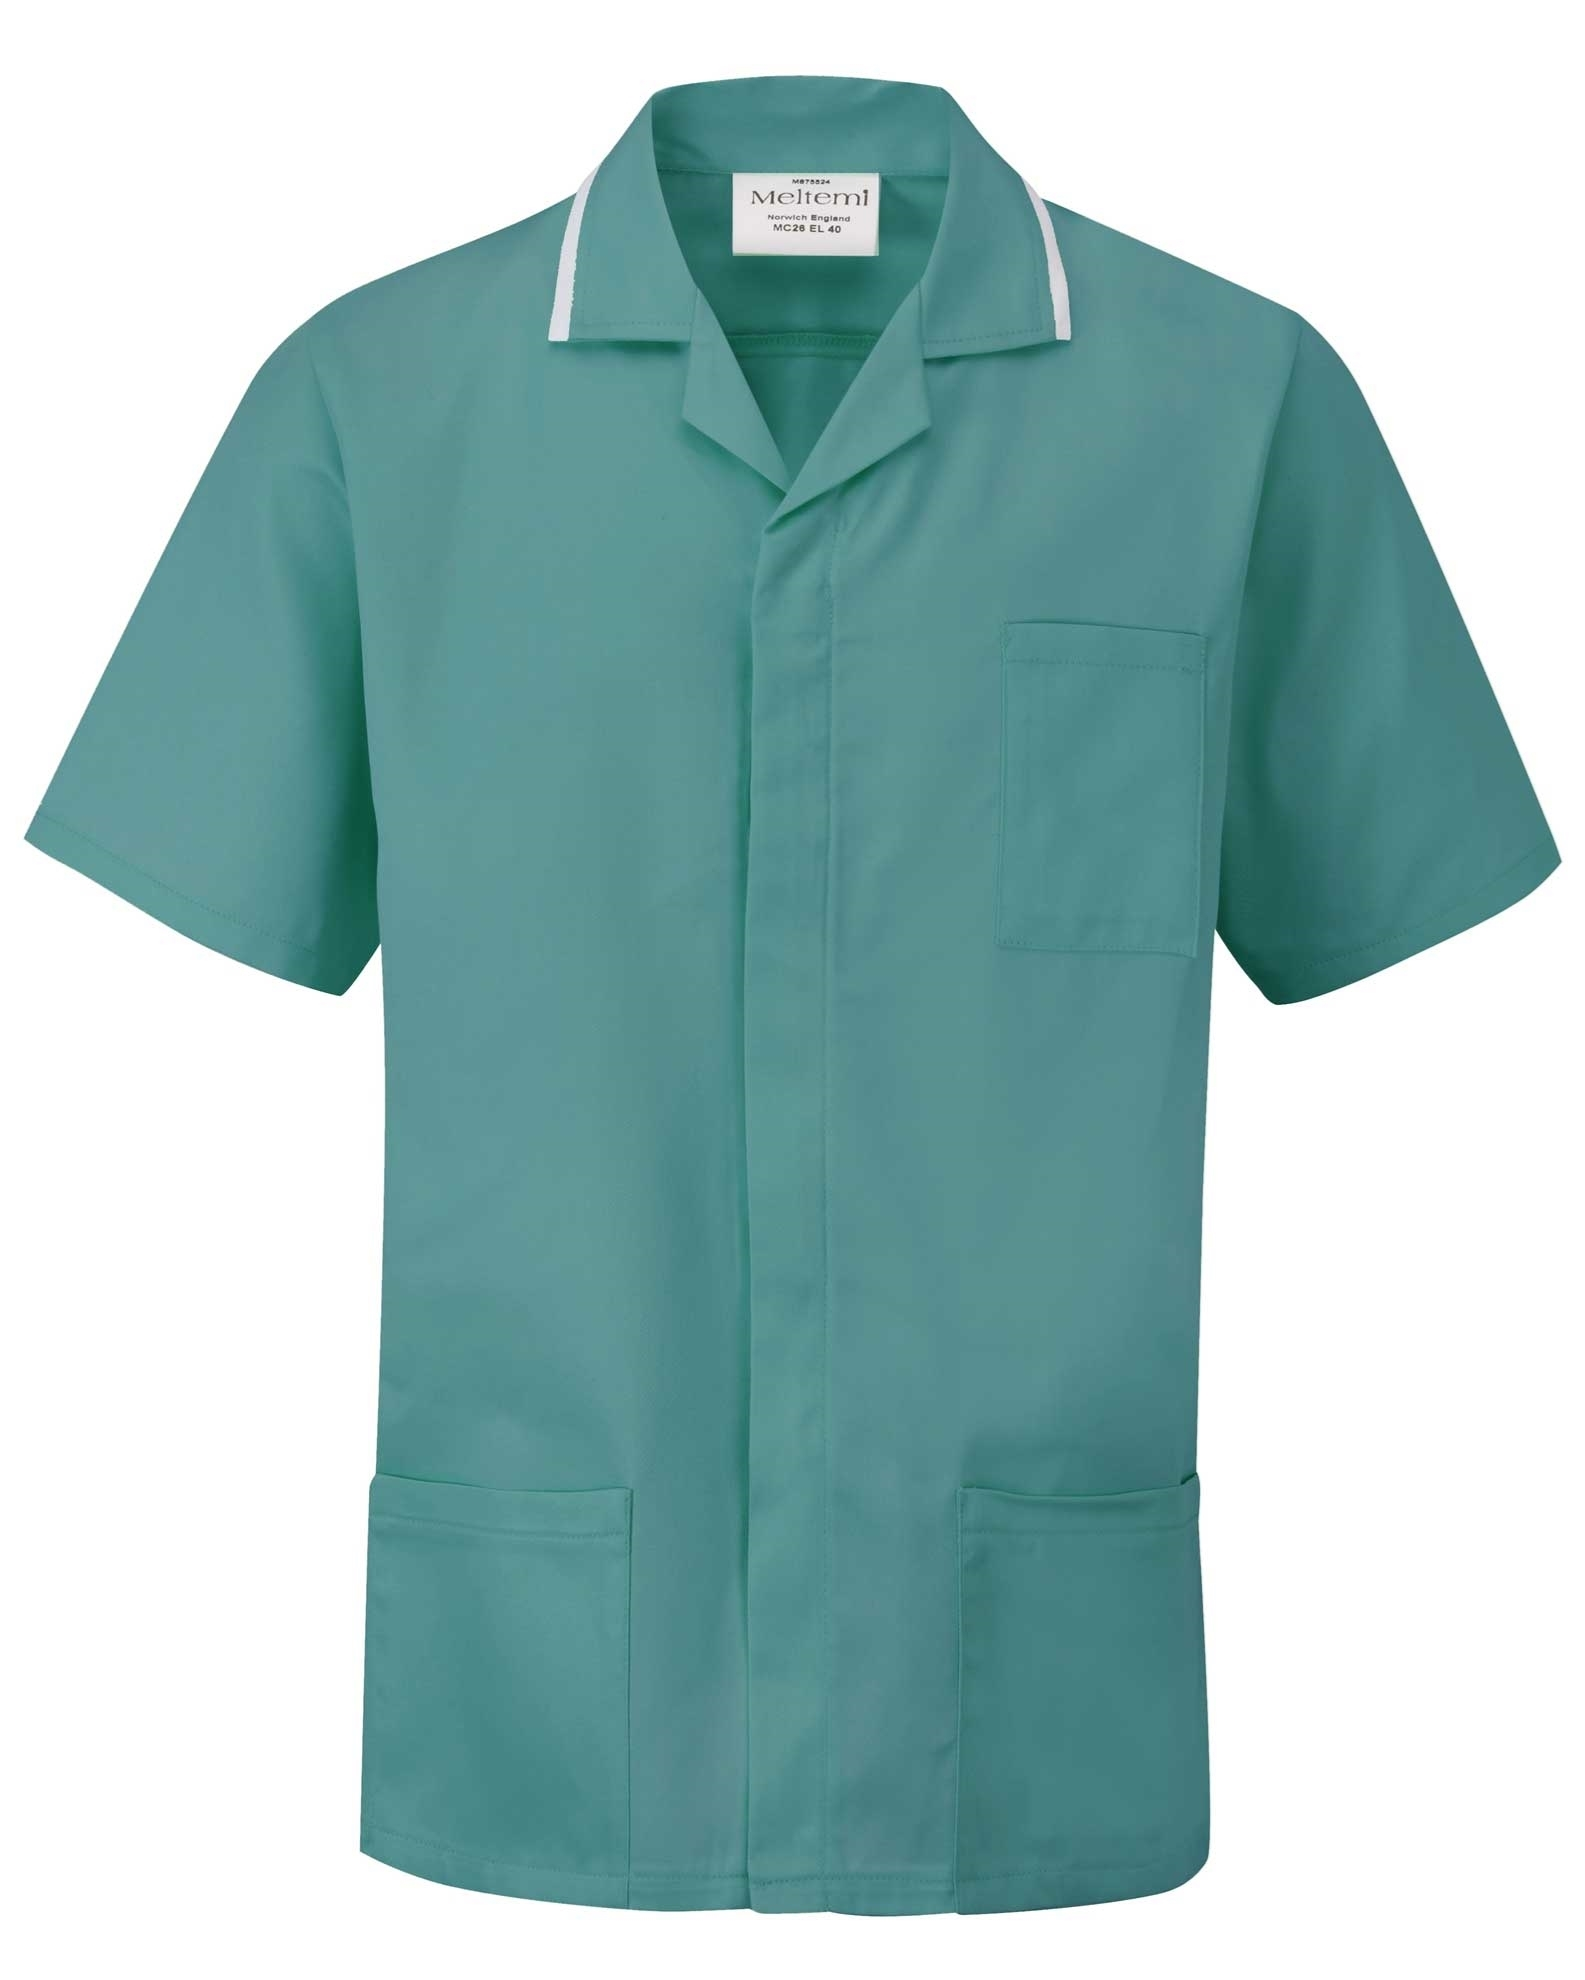 Picture of Advantage Front Fastening Tunic - Turquoise/White